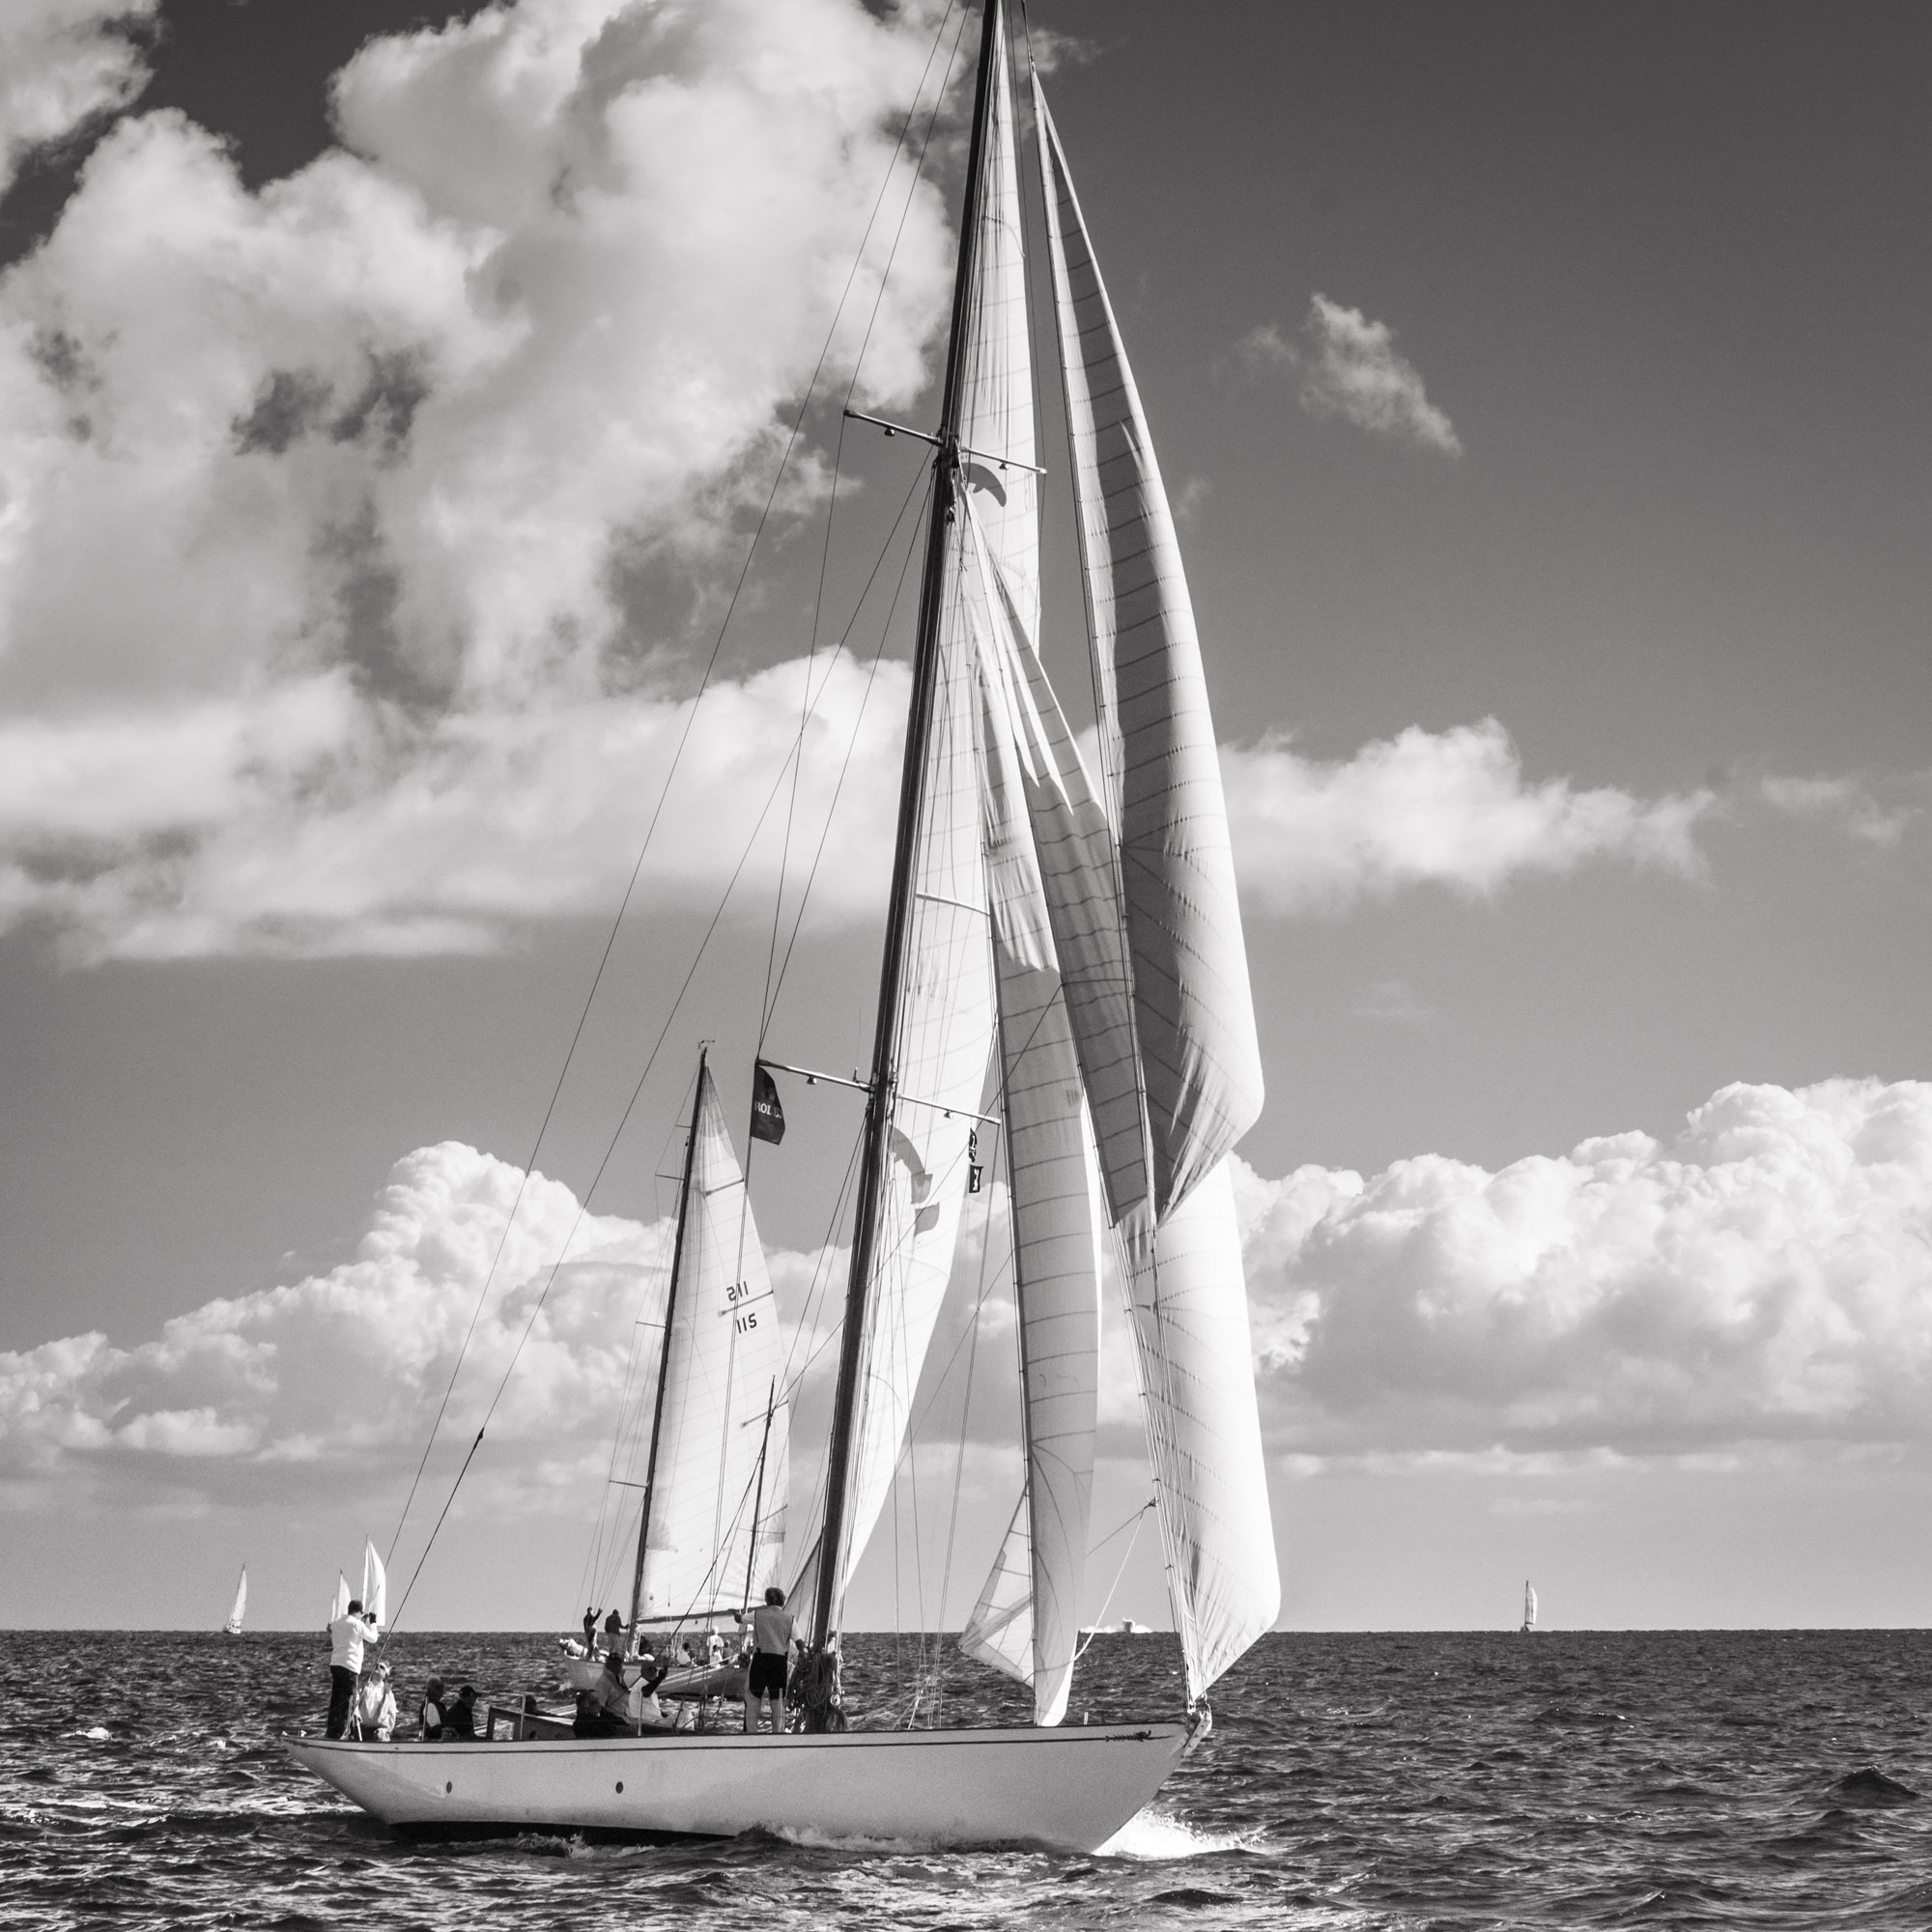 point of sail glass photo print Black and White image